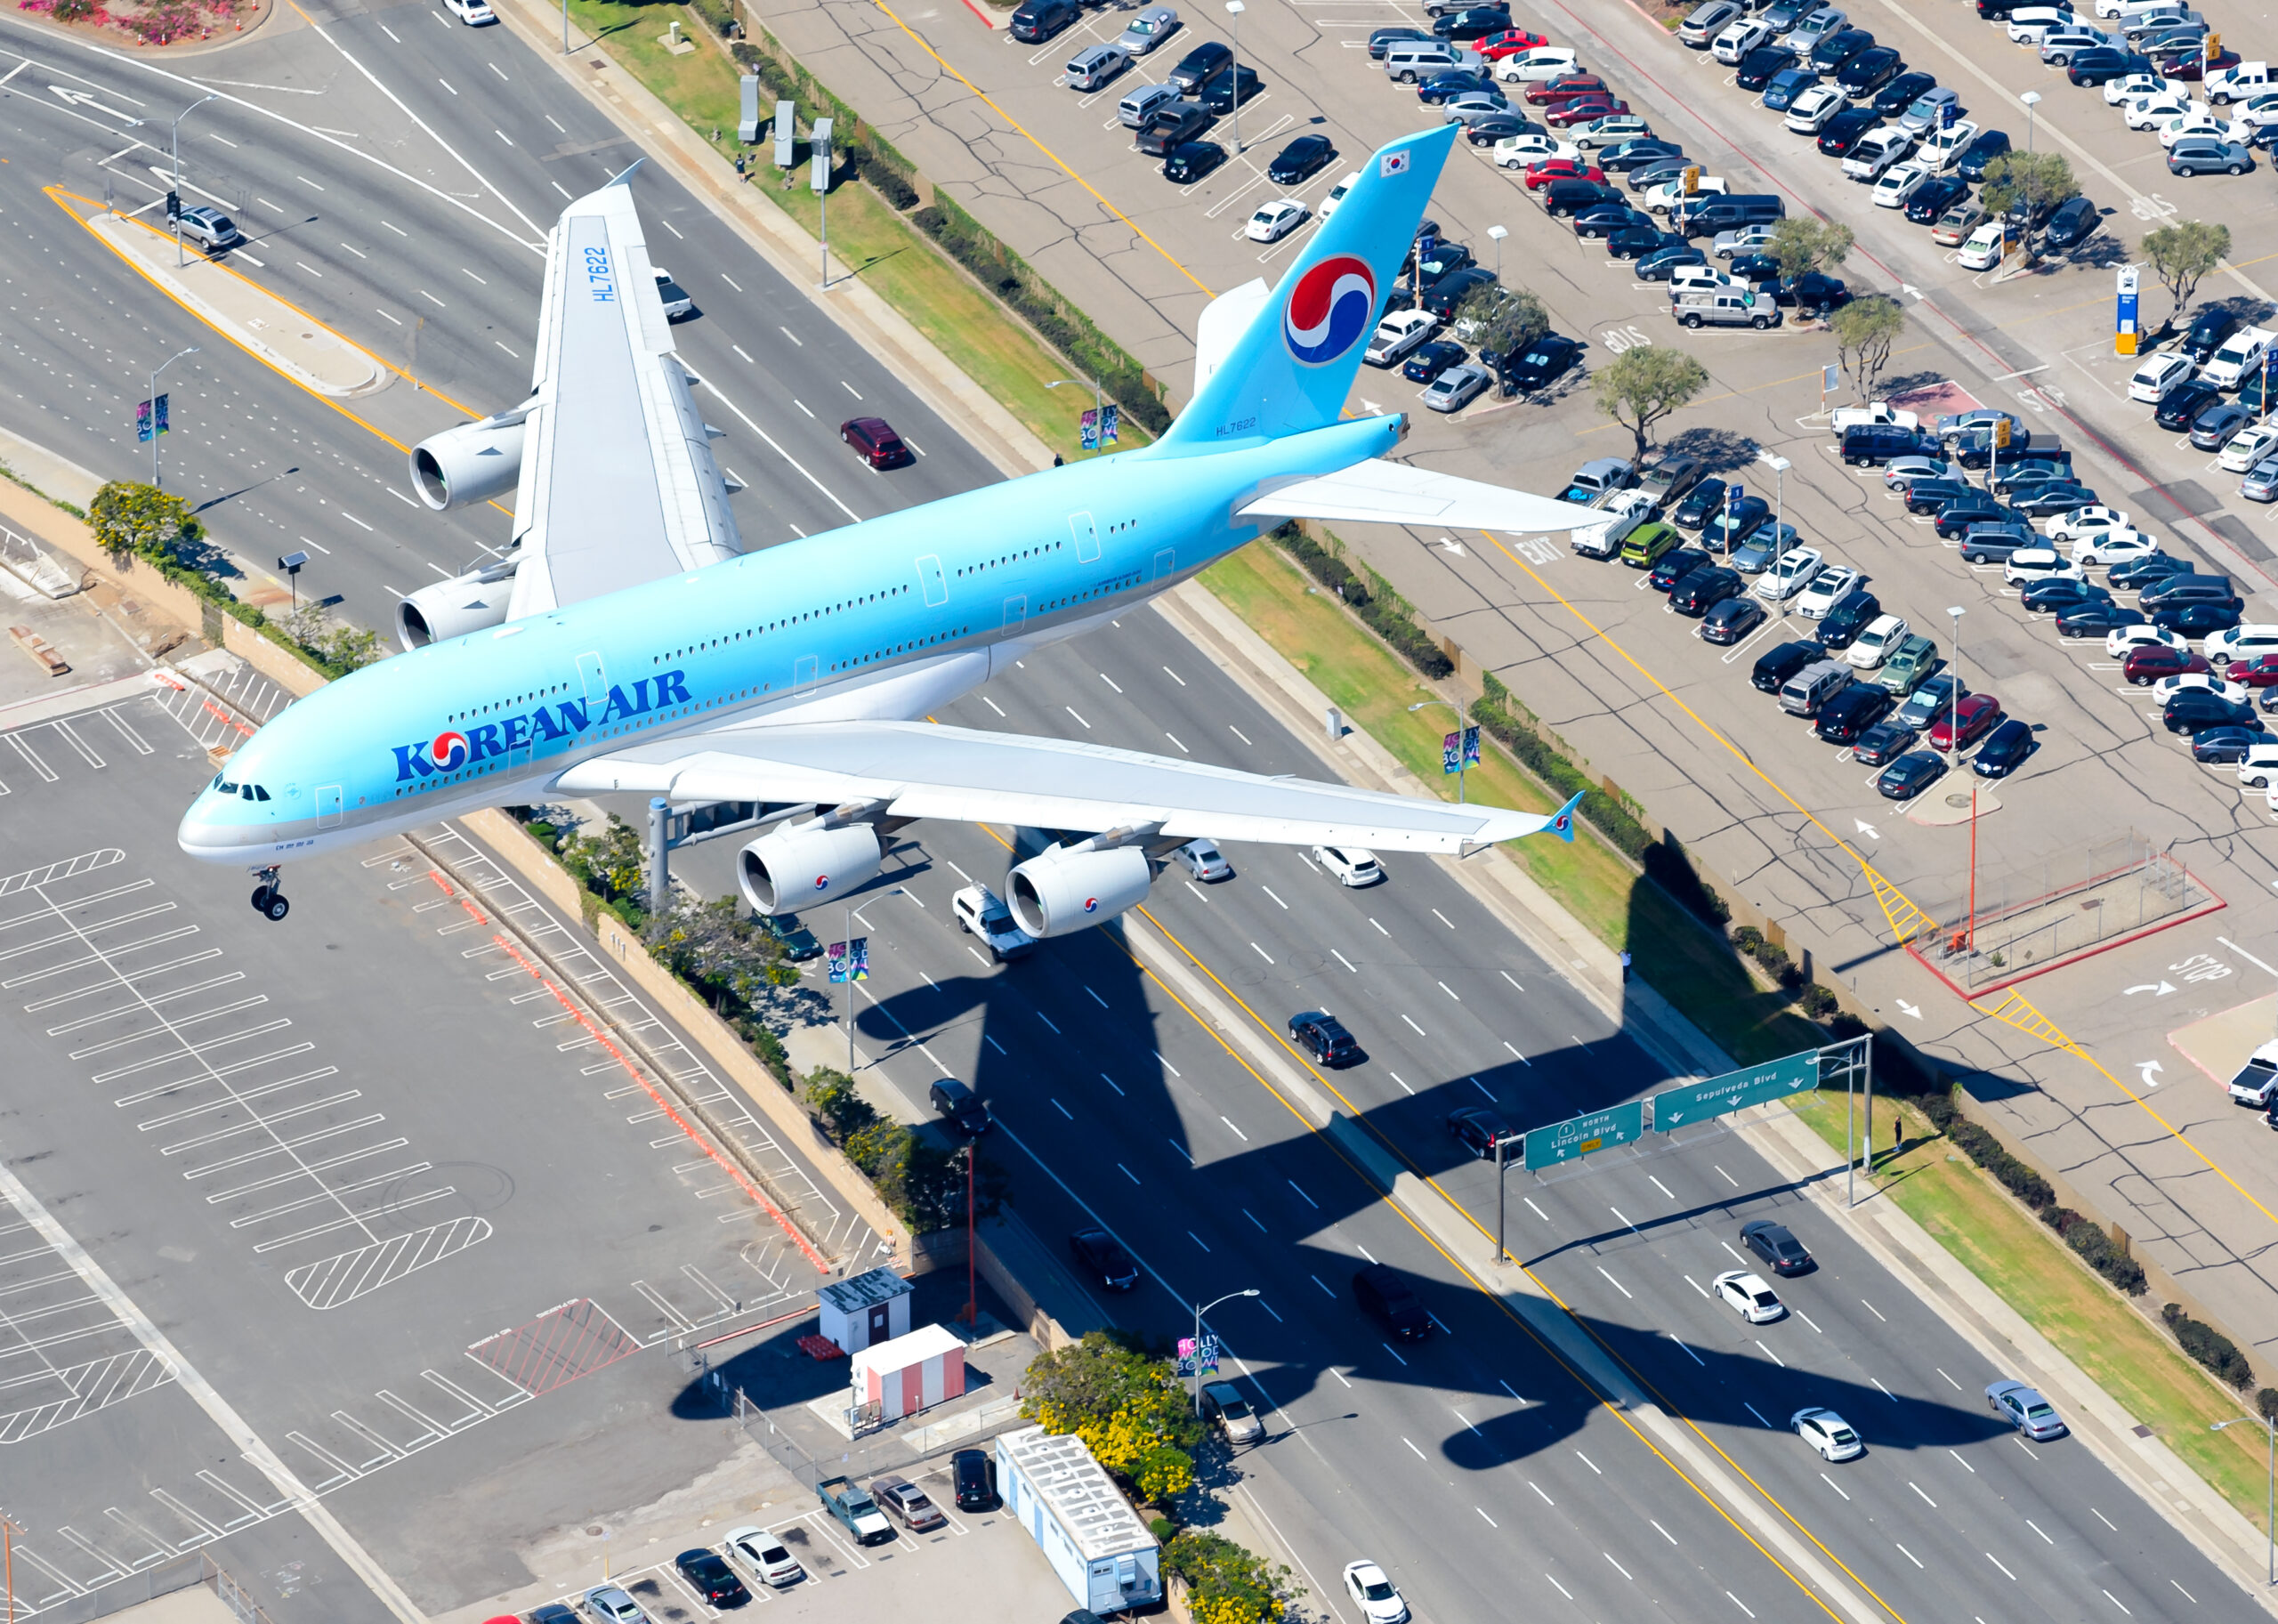 Do You Know How High Commercial Passenger Planes Can Fly? Check It Out!